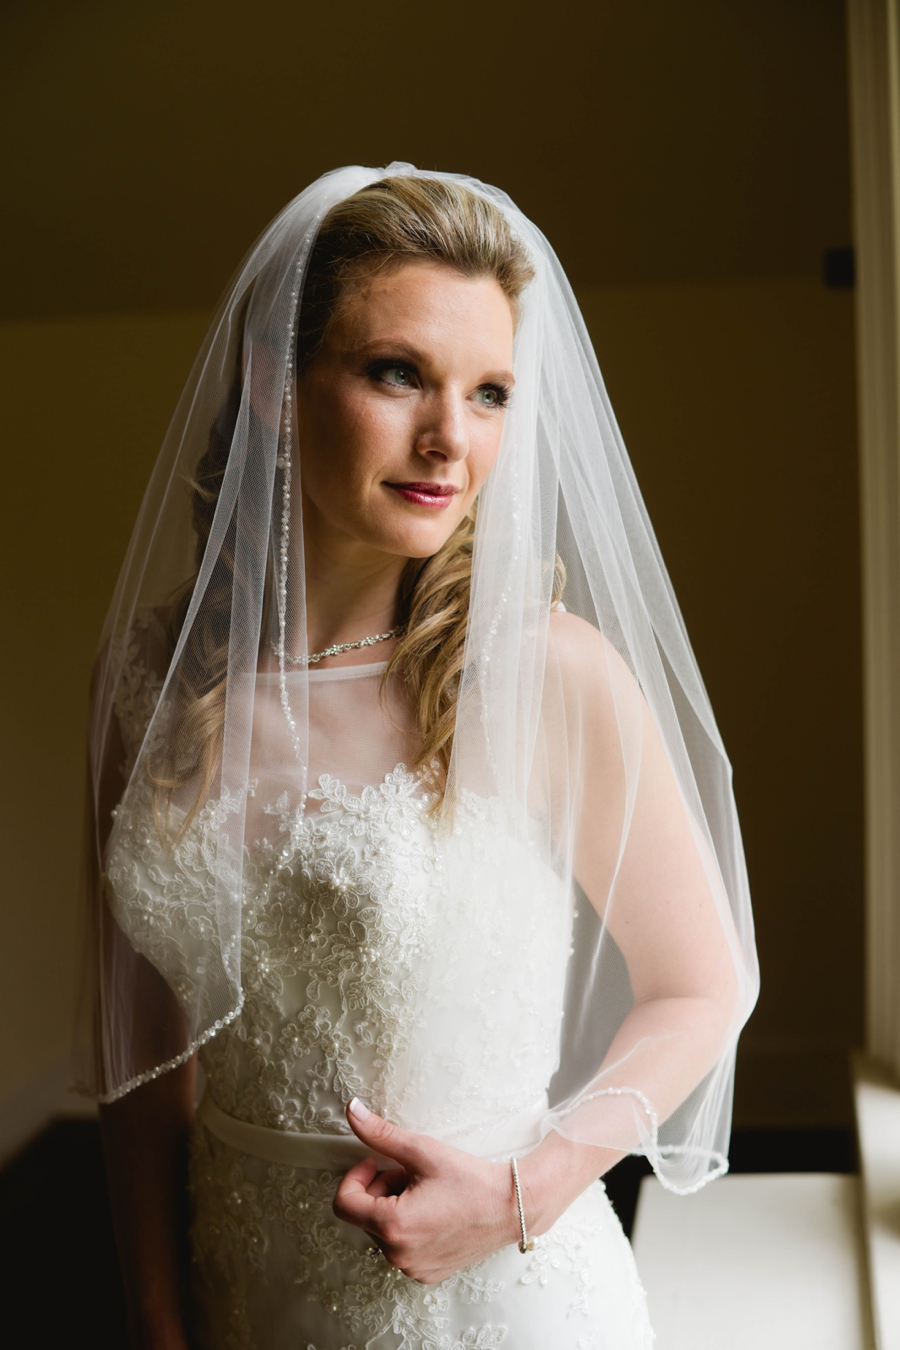 Madeline + Elliot on June 27, 2015 ♥ Beth T Photography at Rust Manor House (Leesburg, VA)